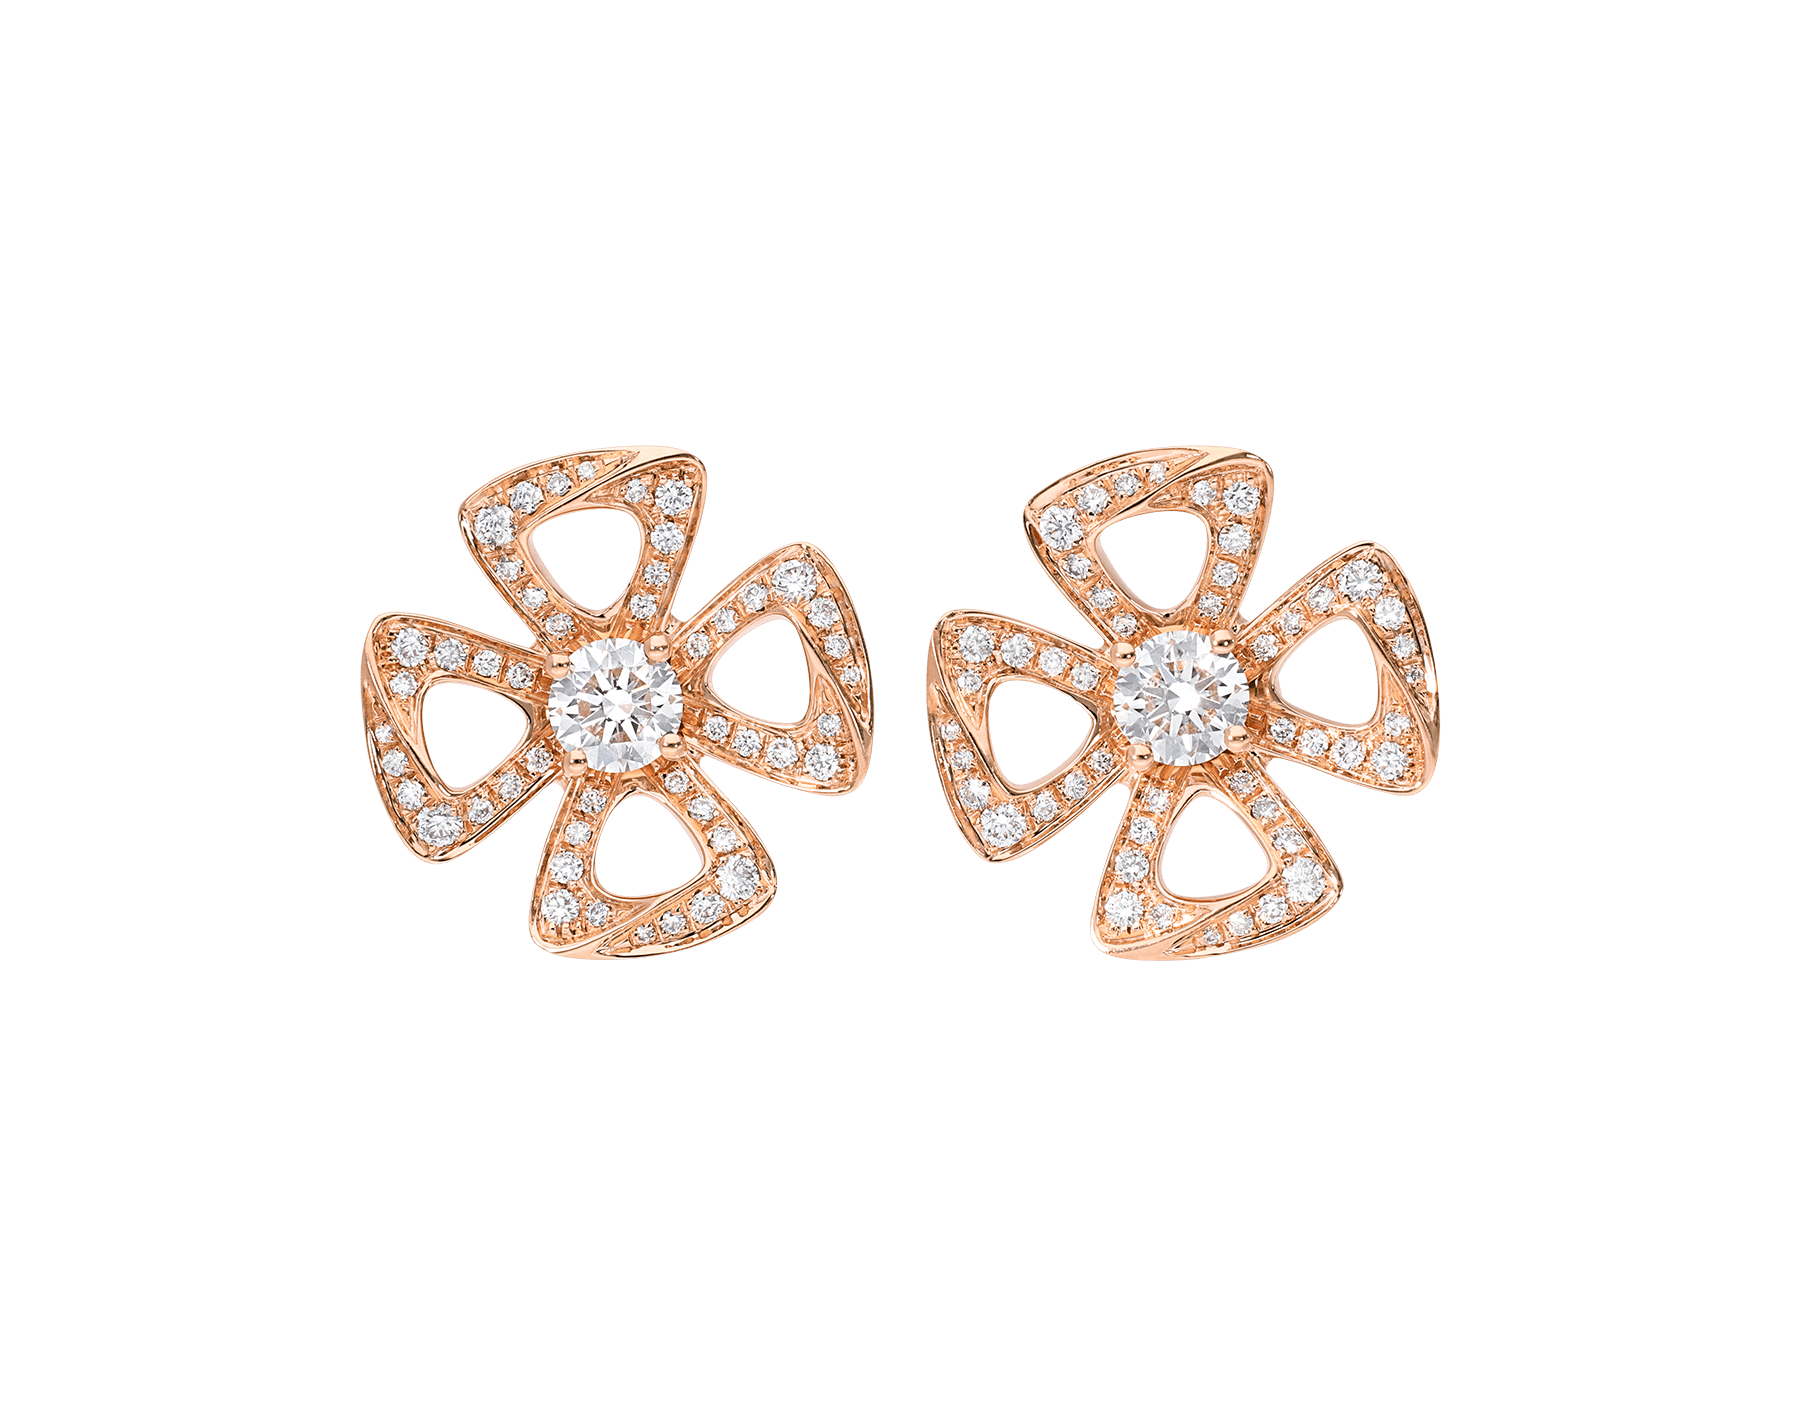 Fiorever 18 kt rose gold earrings set with two central diamonds (0.20 ct each) and pavé diamonds (0.33 ct) 355887 image 1